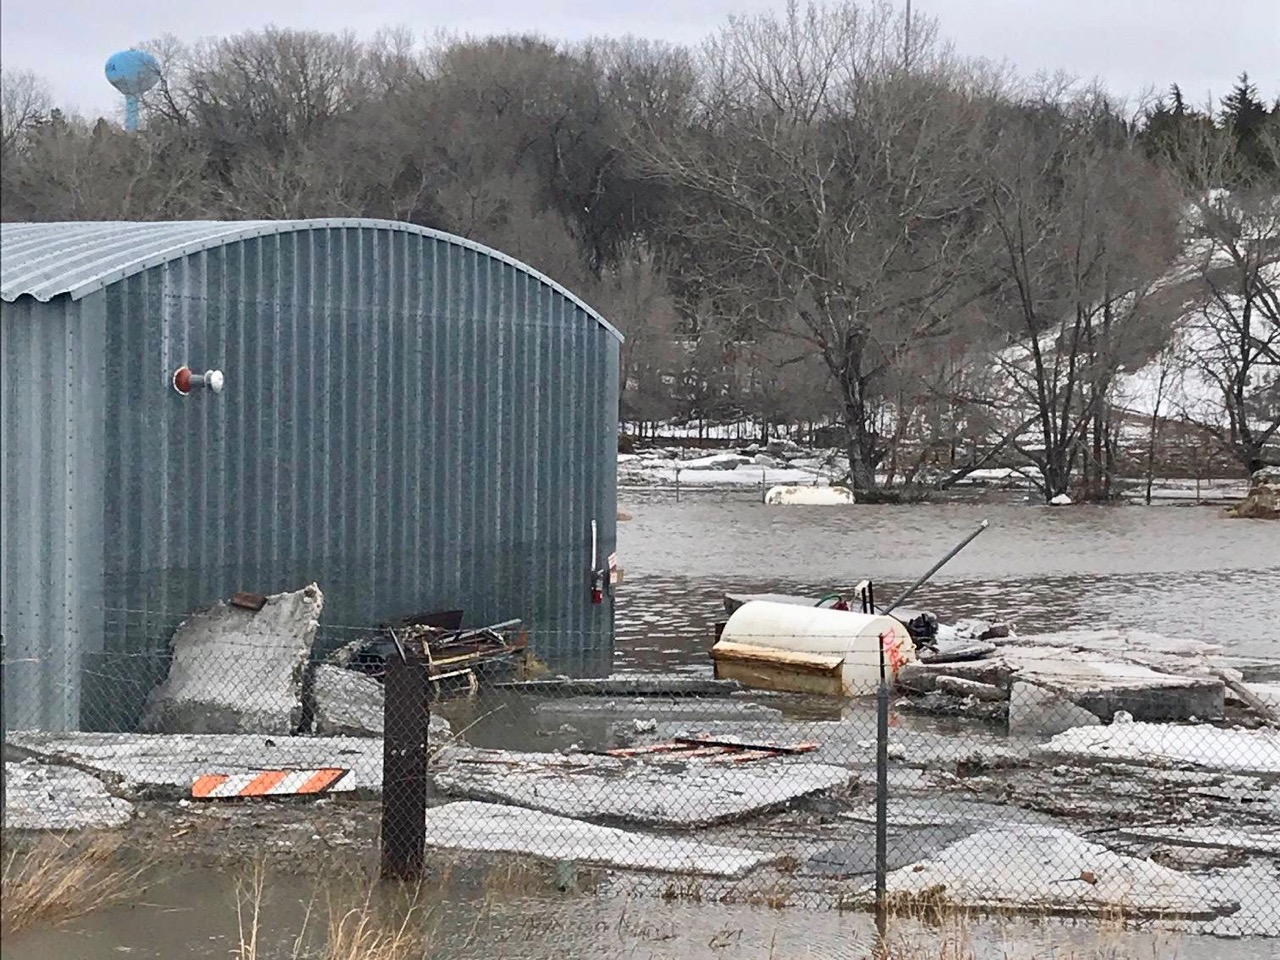 'We barely made it out': Tribal families hit hard by historic flooding